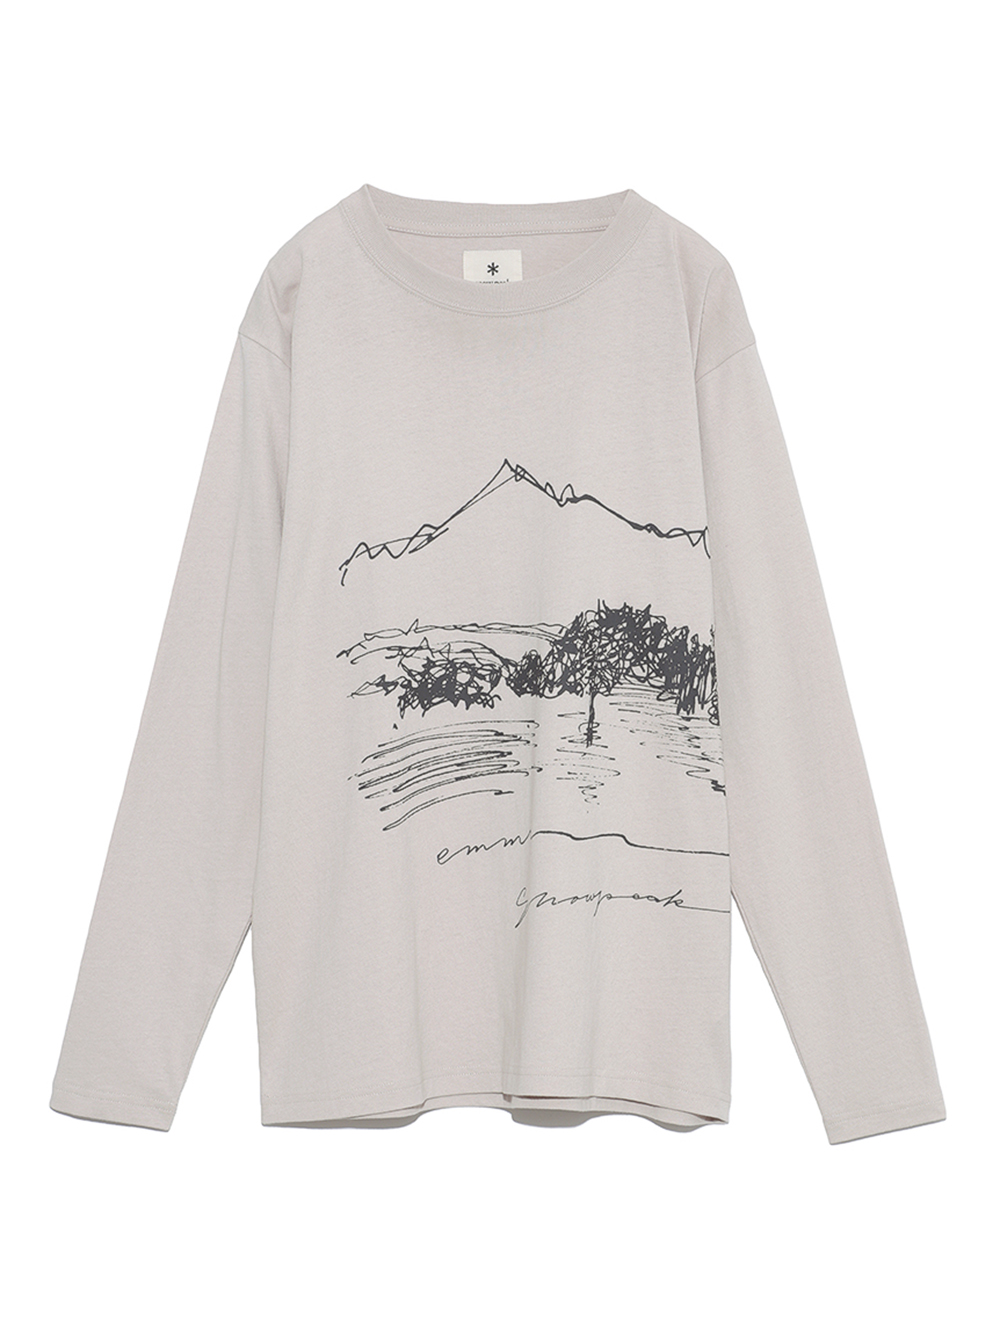 【emmi×Snow Peak】CF Graphic Longsleeve TEE